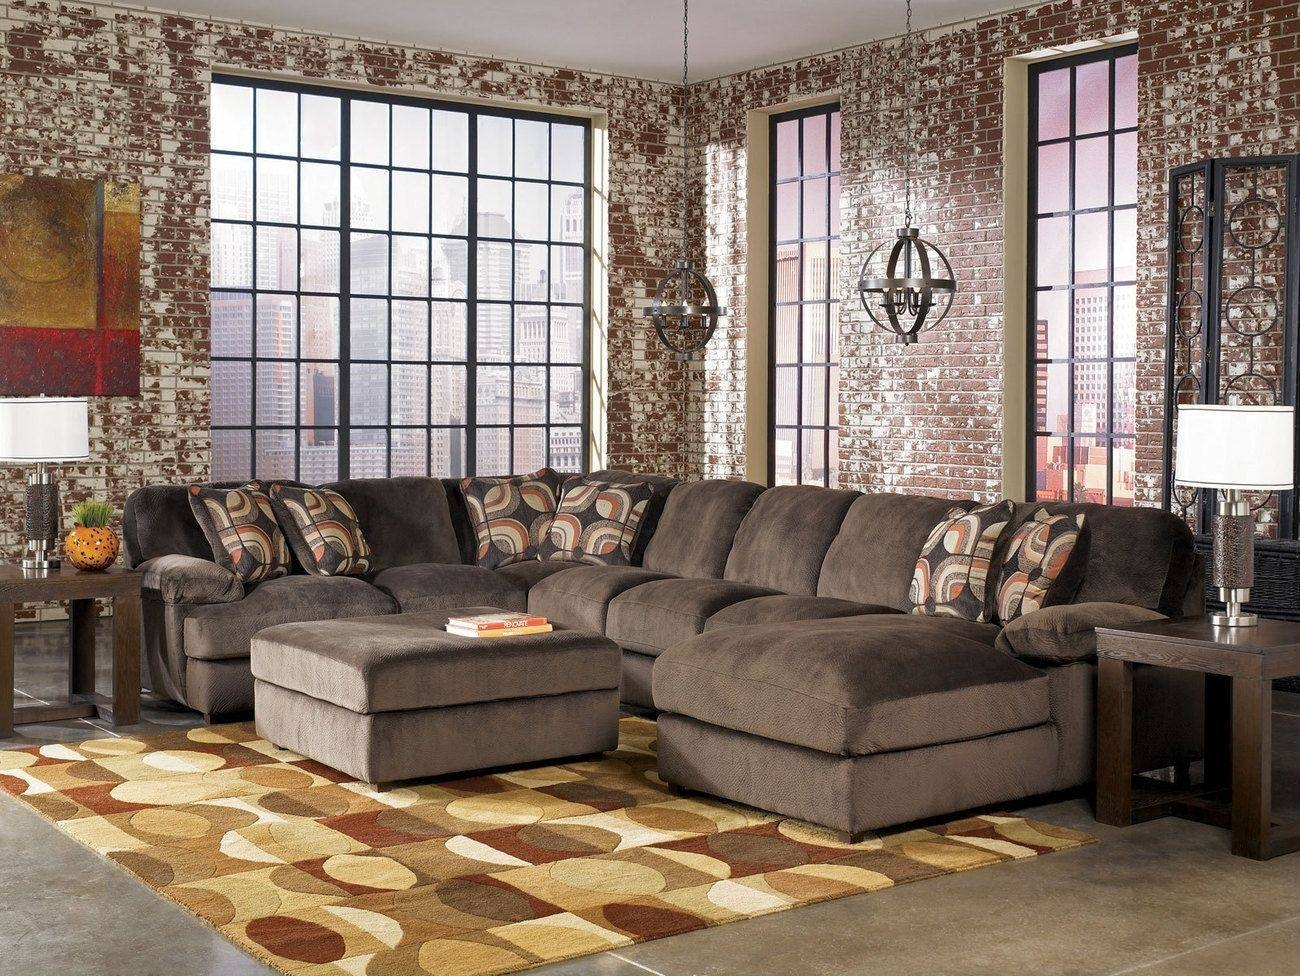 Huge Sectional Sofa. Grey Sectionals With Chaise Chamberly Alloy 4 in Extra Large Sectional Sofas (Image 15 of 30)